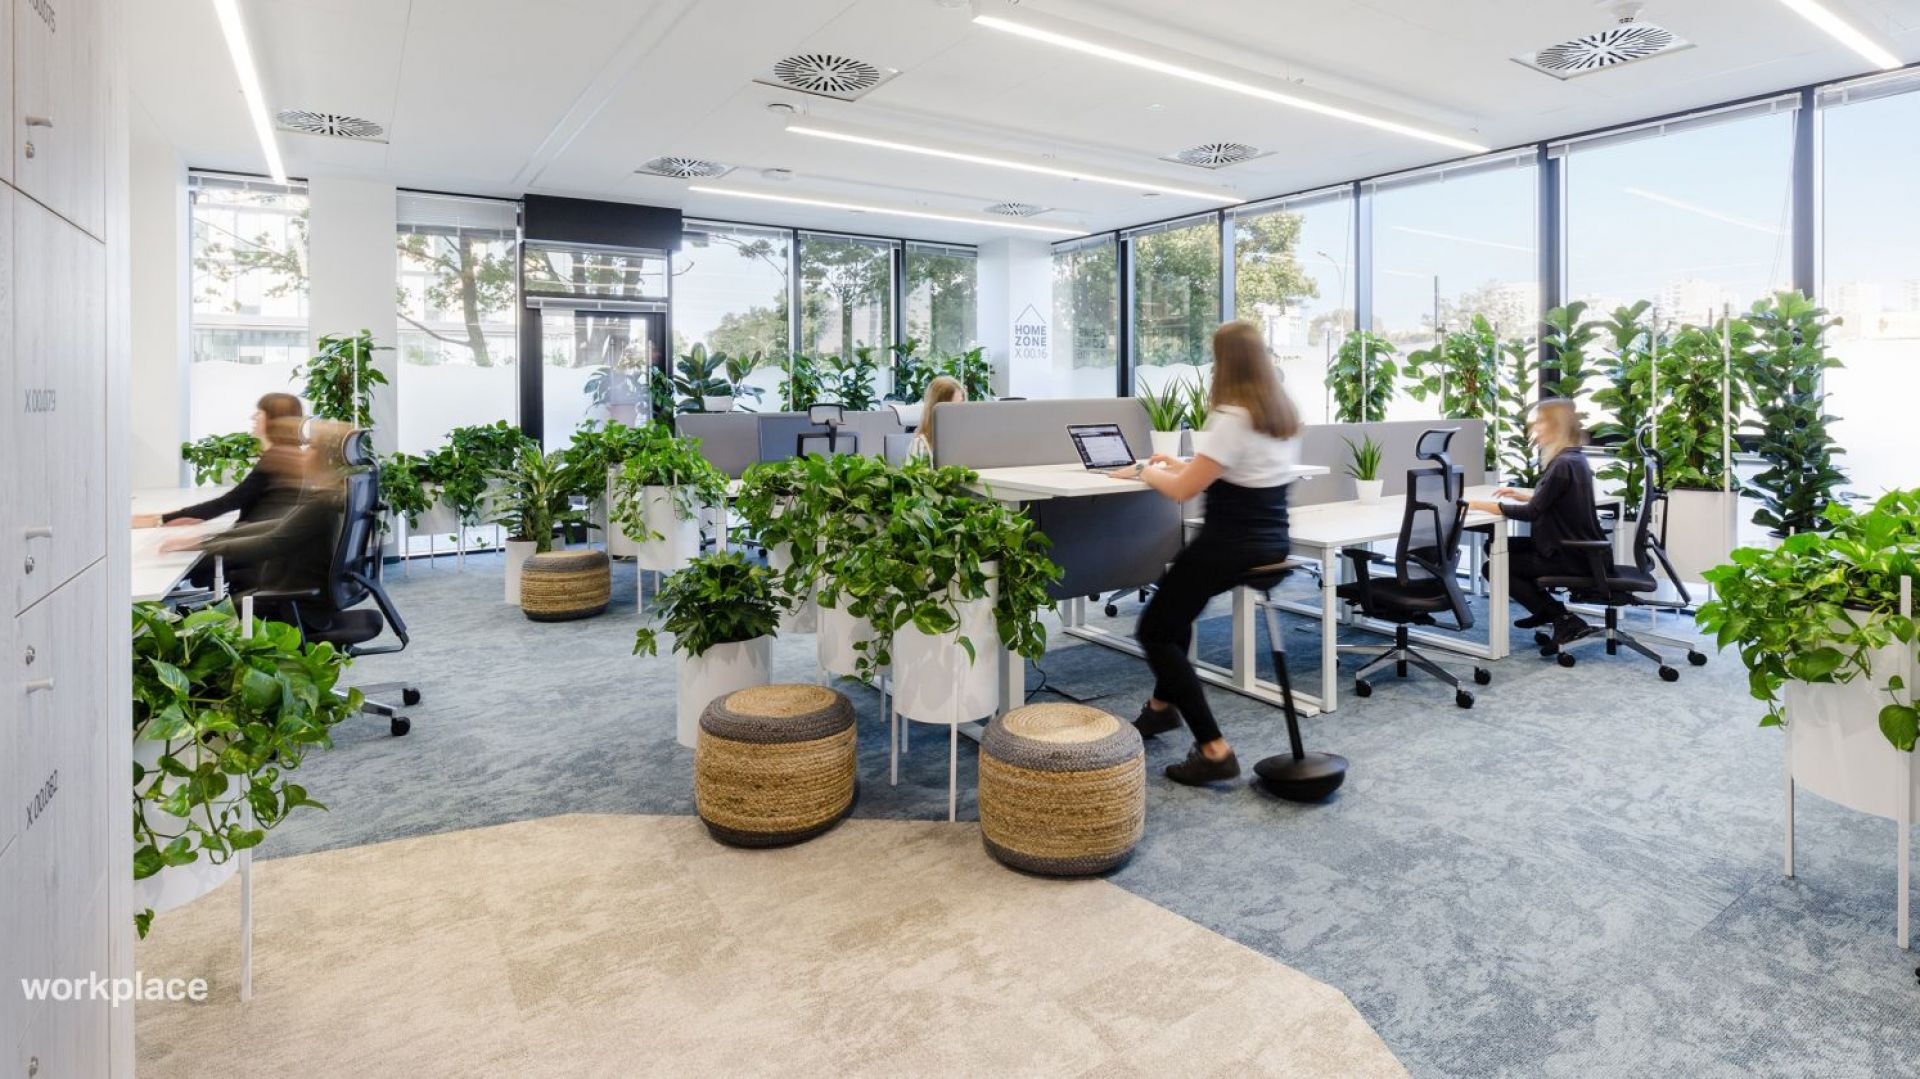 mat. pras. Workplace SolutionsWE_Nordea_Greenest_4.jpg